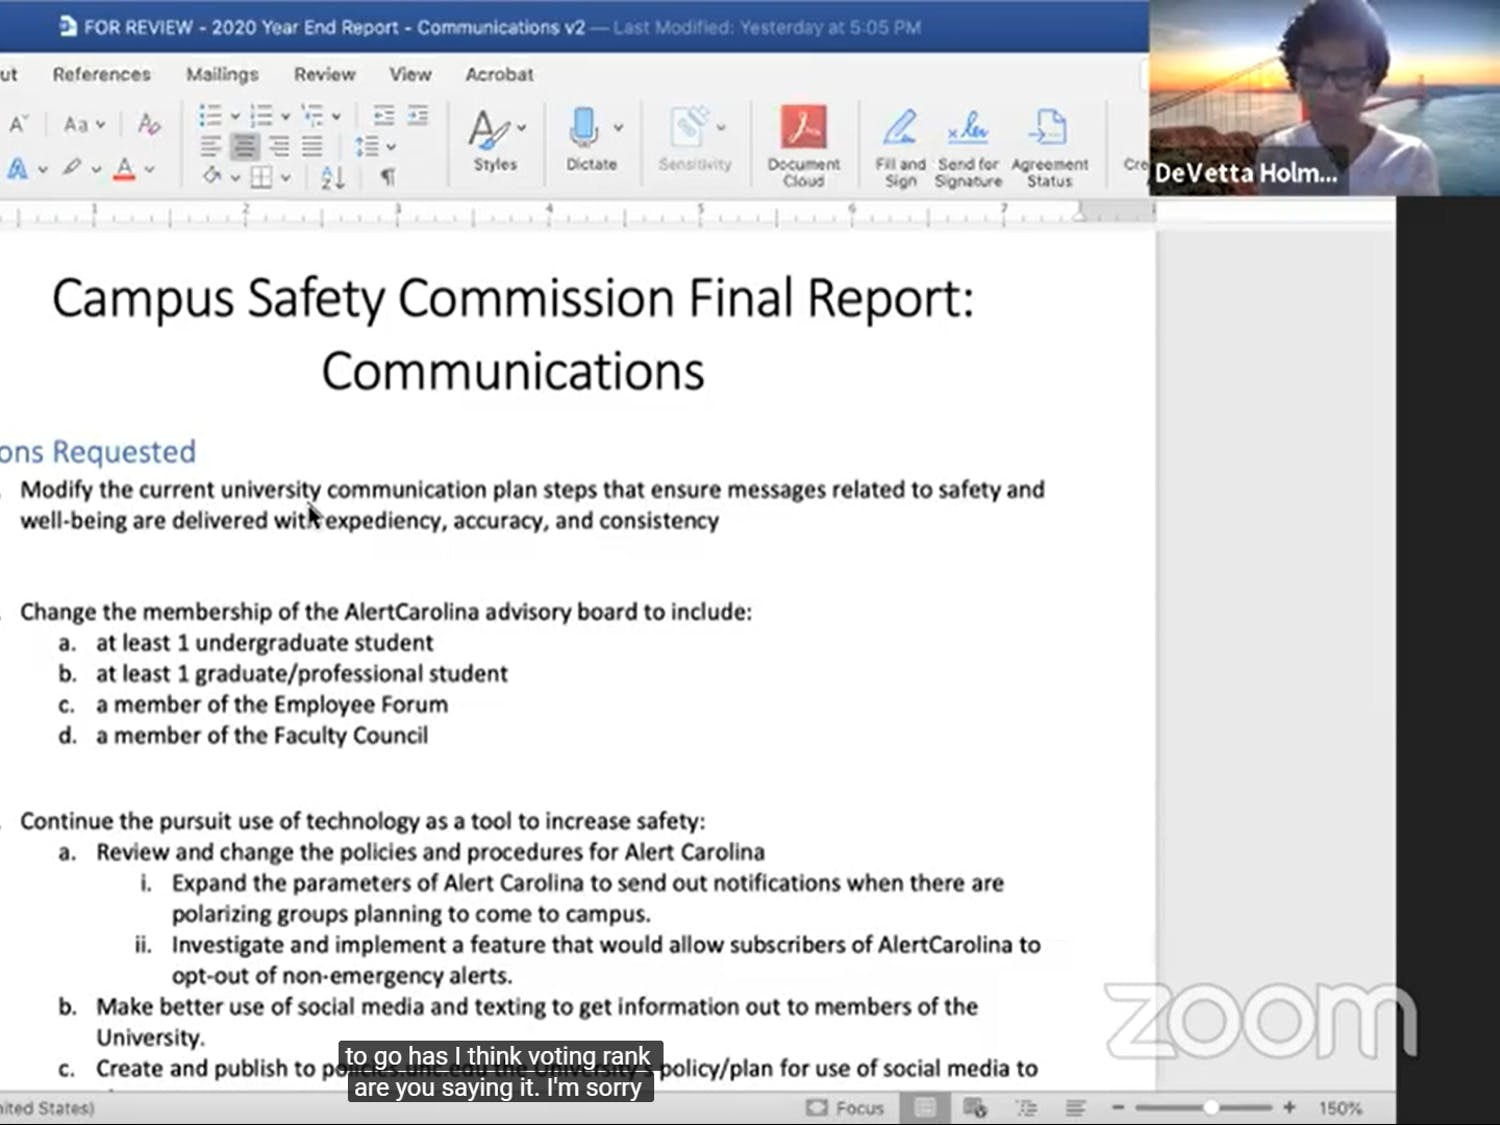 The Campus Safety Commission held a supplemental meeting to review subcommittee recommendations relating to communications and the safety of marginalized communities Wednesday, April 22, 2020.